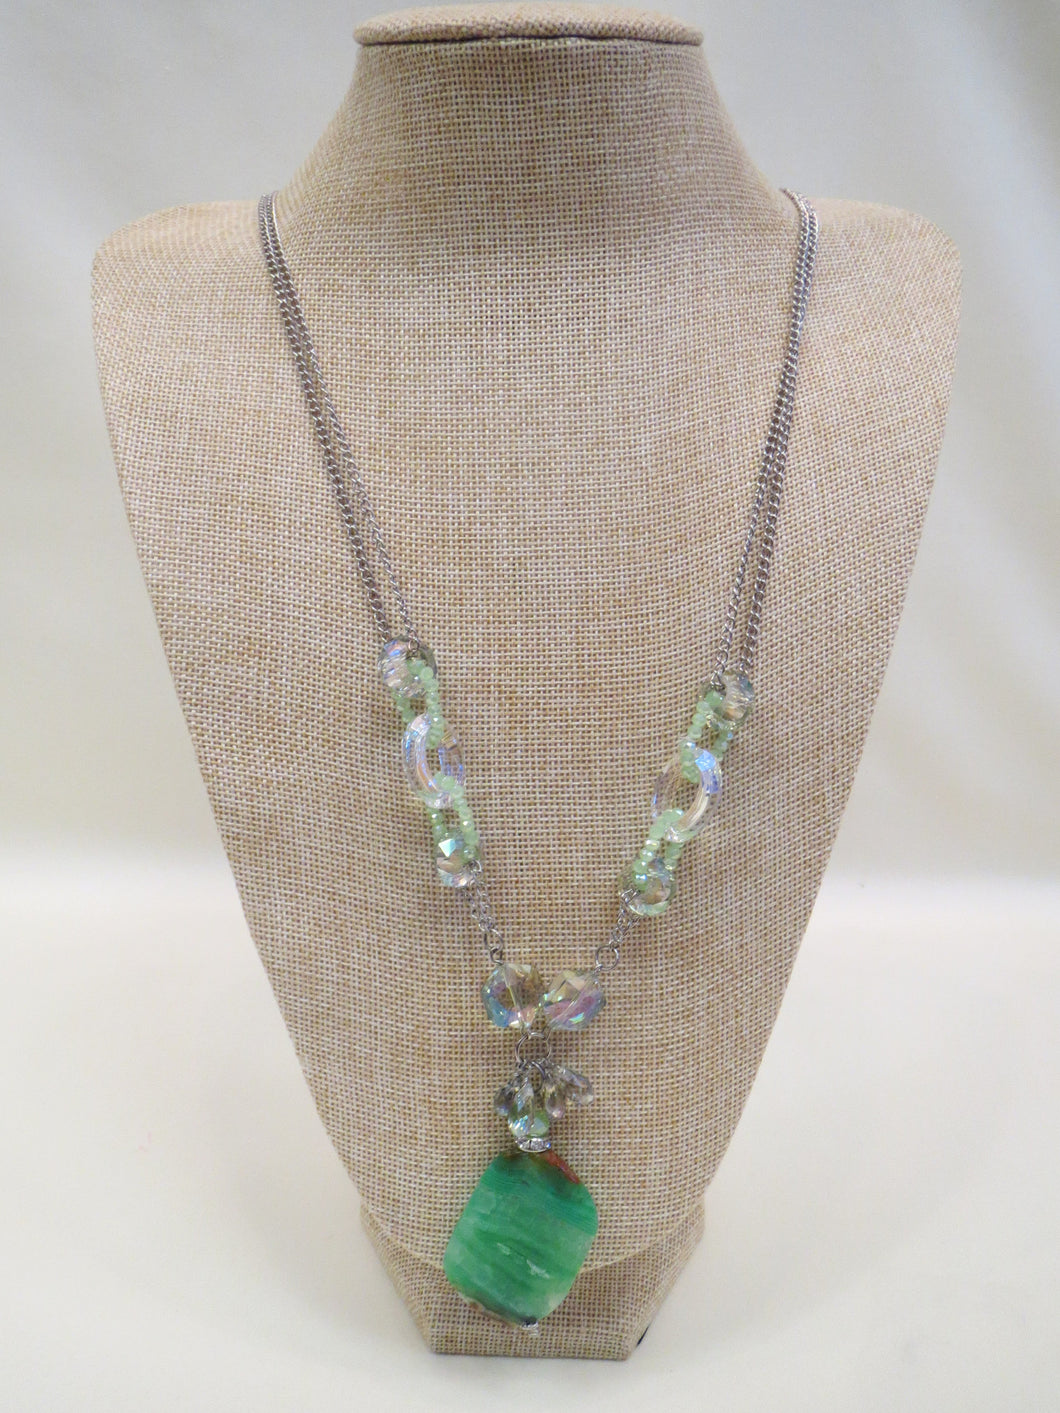 ADO | Green Gem Stone Pendant Necklace Long - All Decd Out